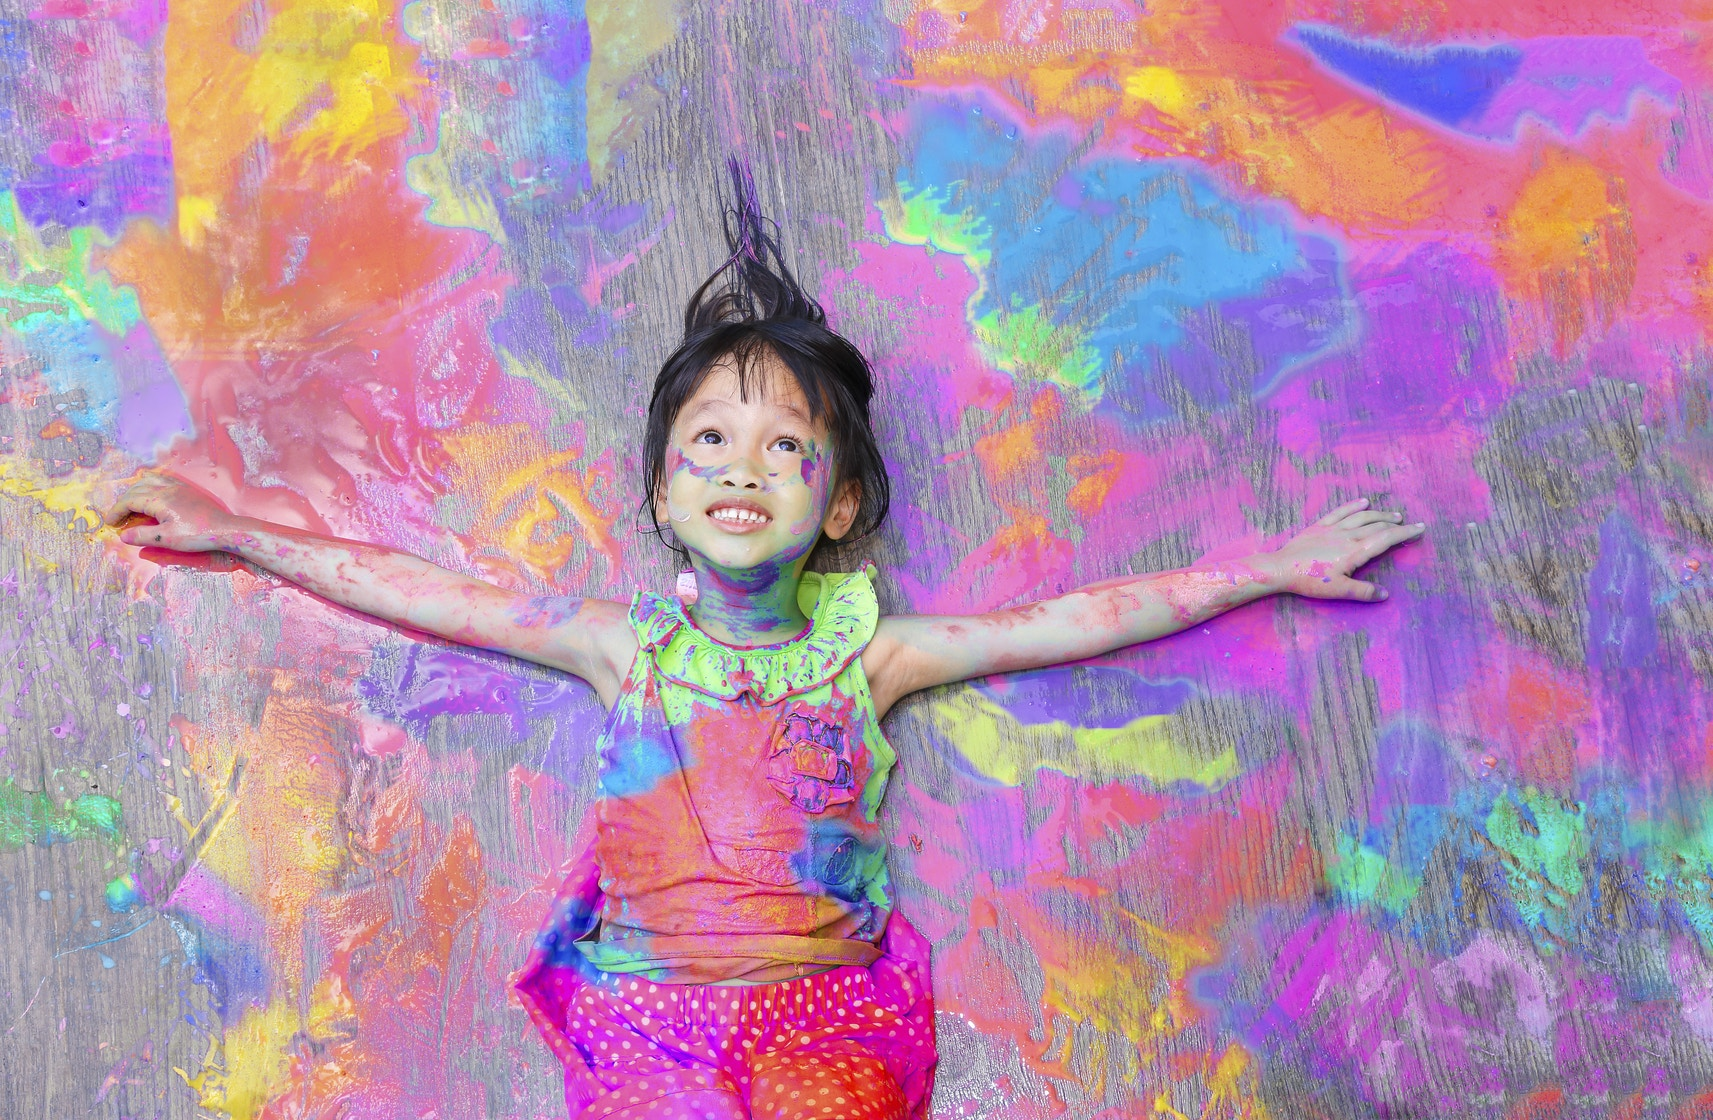 girl covered in paint lying on splattered paint background